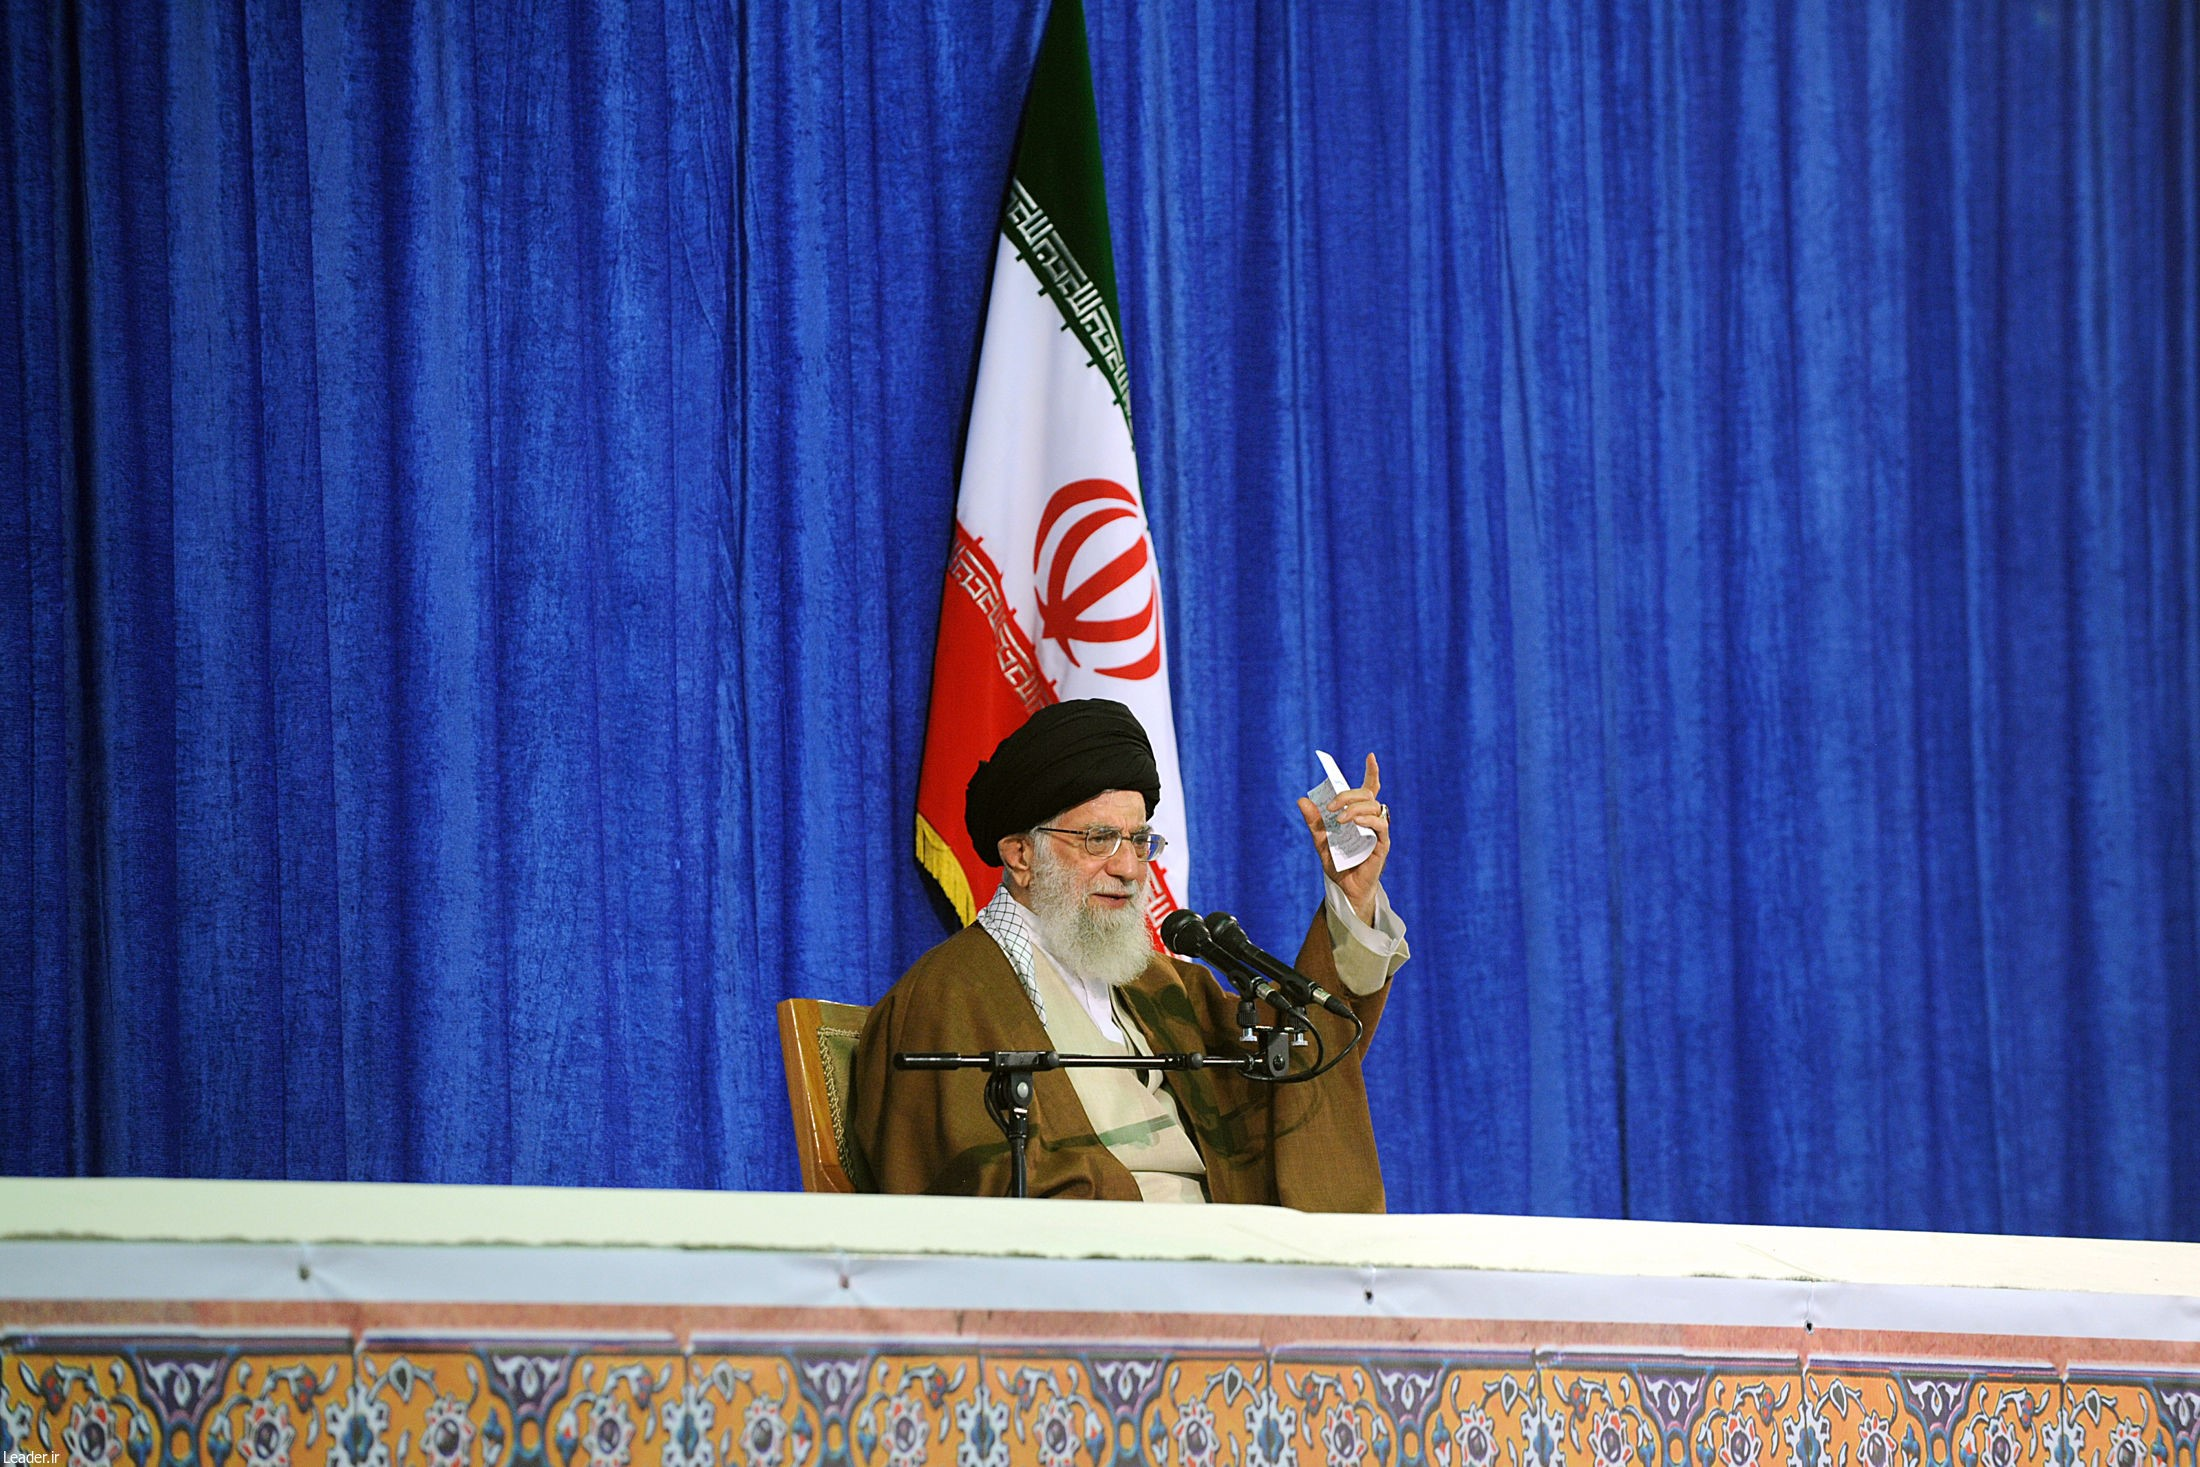 Iranian Supreme Leader Ayatollah Ali Khamanei makes a speech regarding Trump's withdrawal decision from Iran nuclear deal during a press conference in Tehran, Iran on May 09, 2018